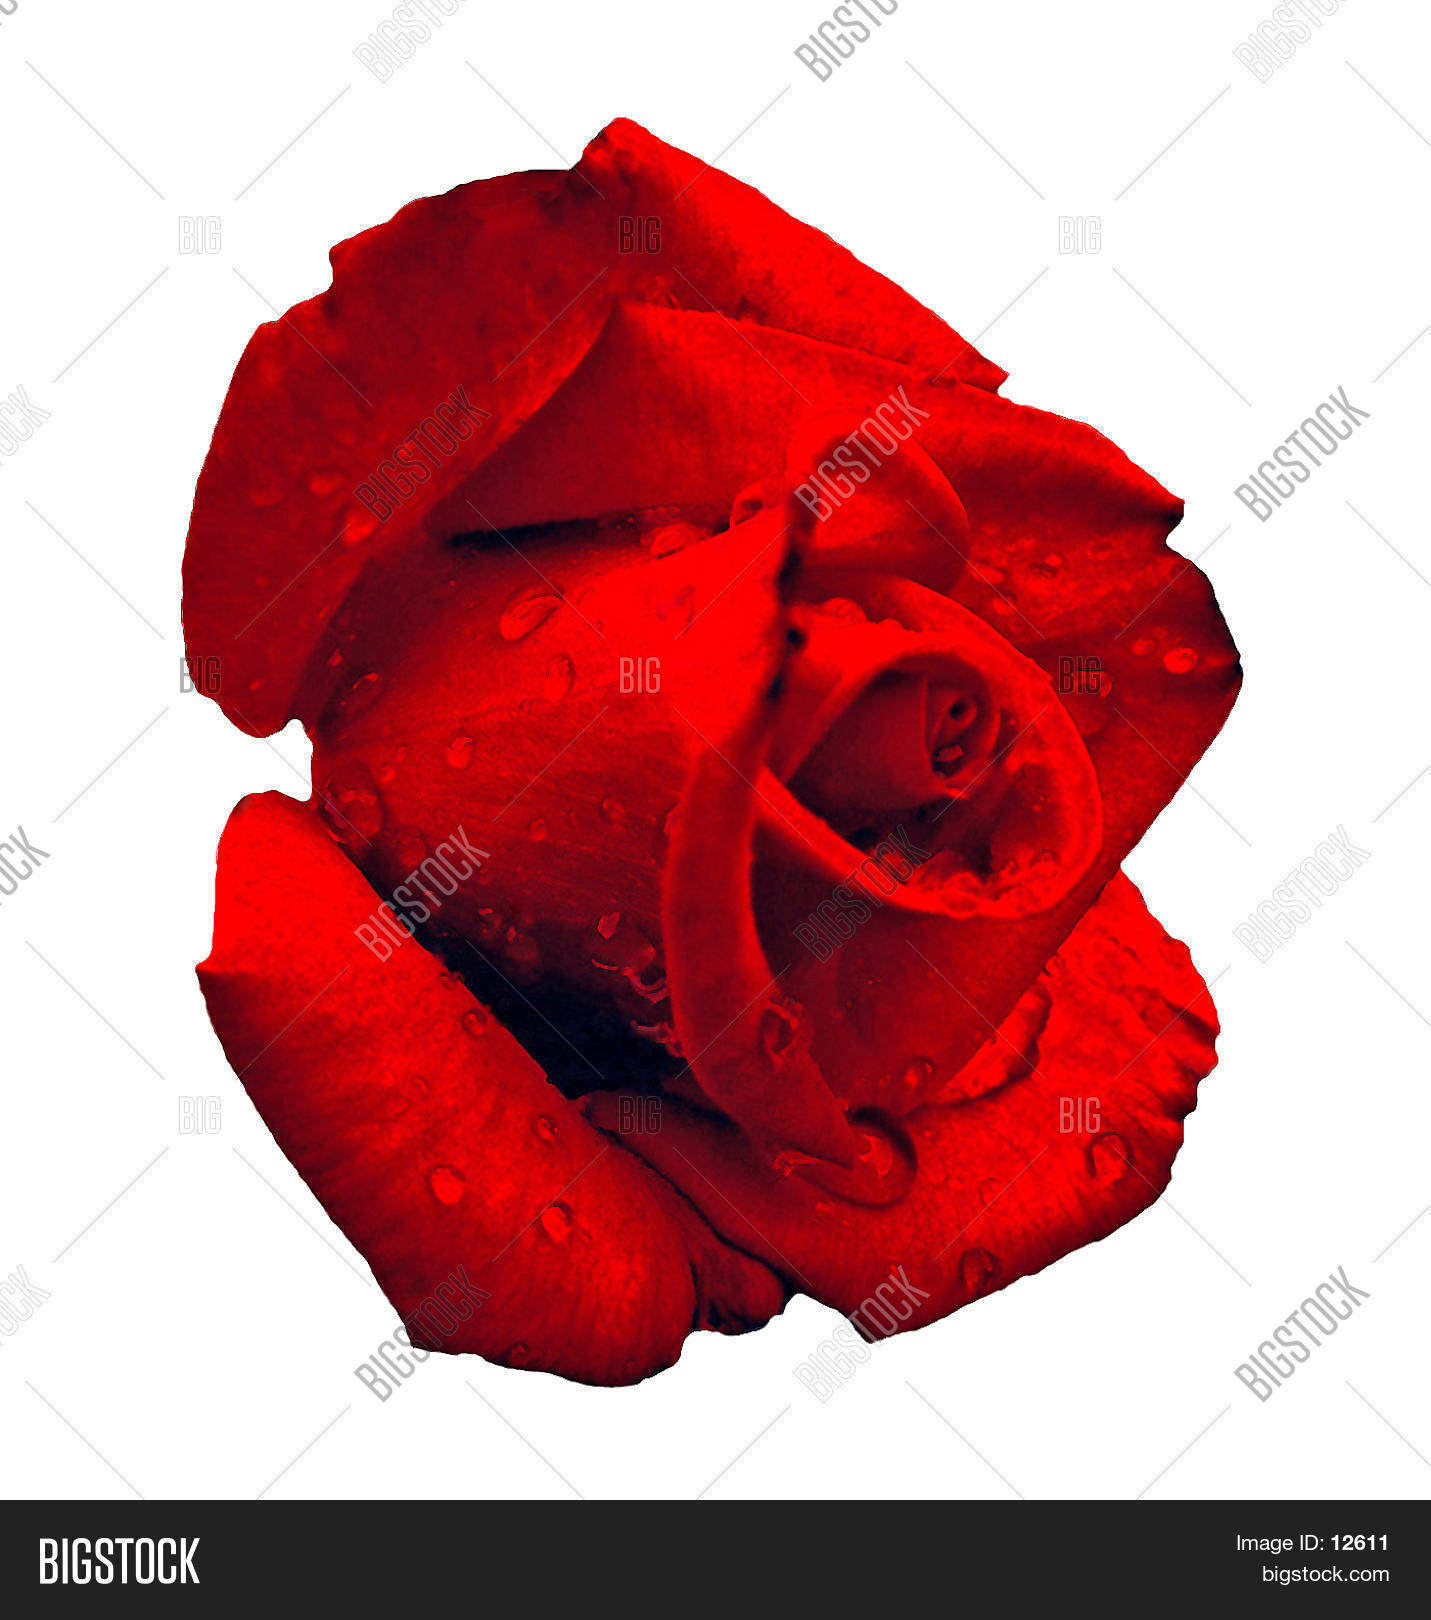 beauty,bud,dew,drops,floral,gift,holiday,love,moist,over white,pedals,red,red rose,red roses,romantic,rose,symbol,valentine's,valentines day,waterdrop,wet